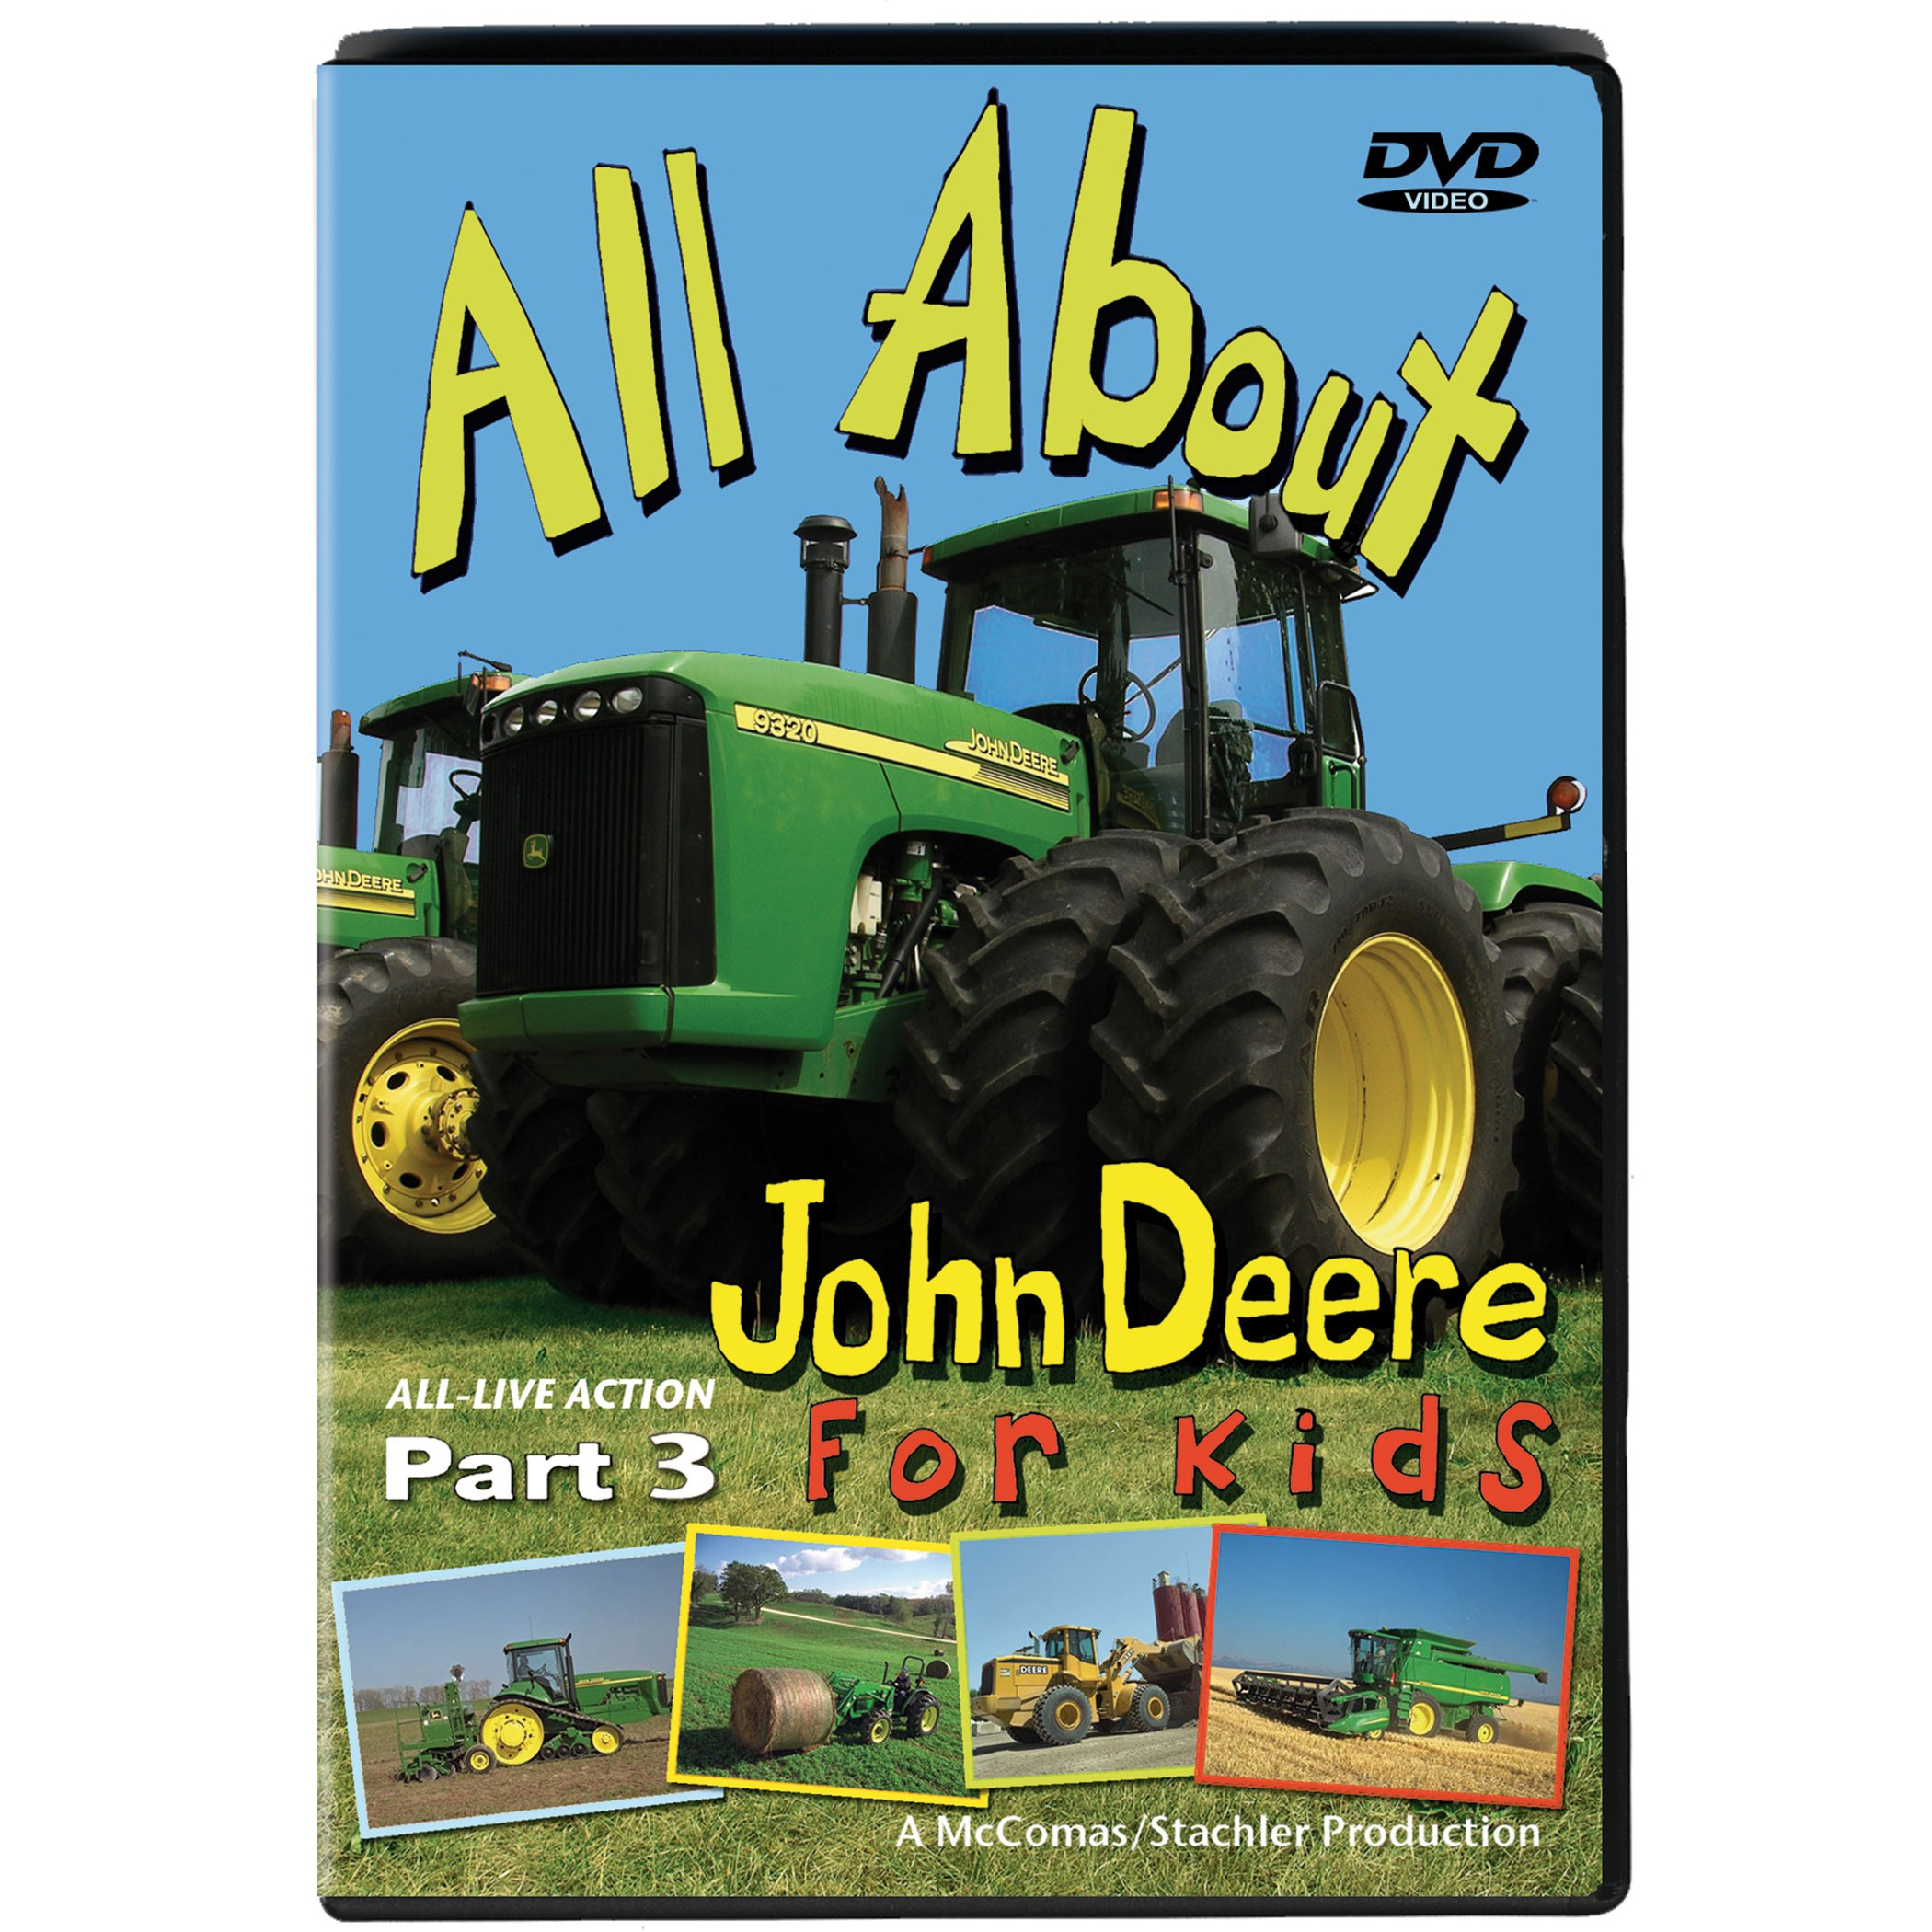 John Deere action and fun continues on All About John Deere DVD Part 3 ...